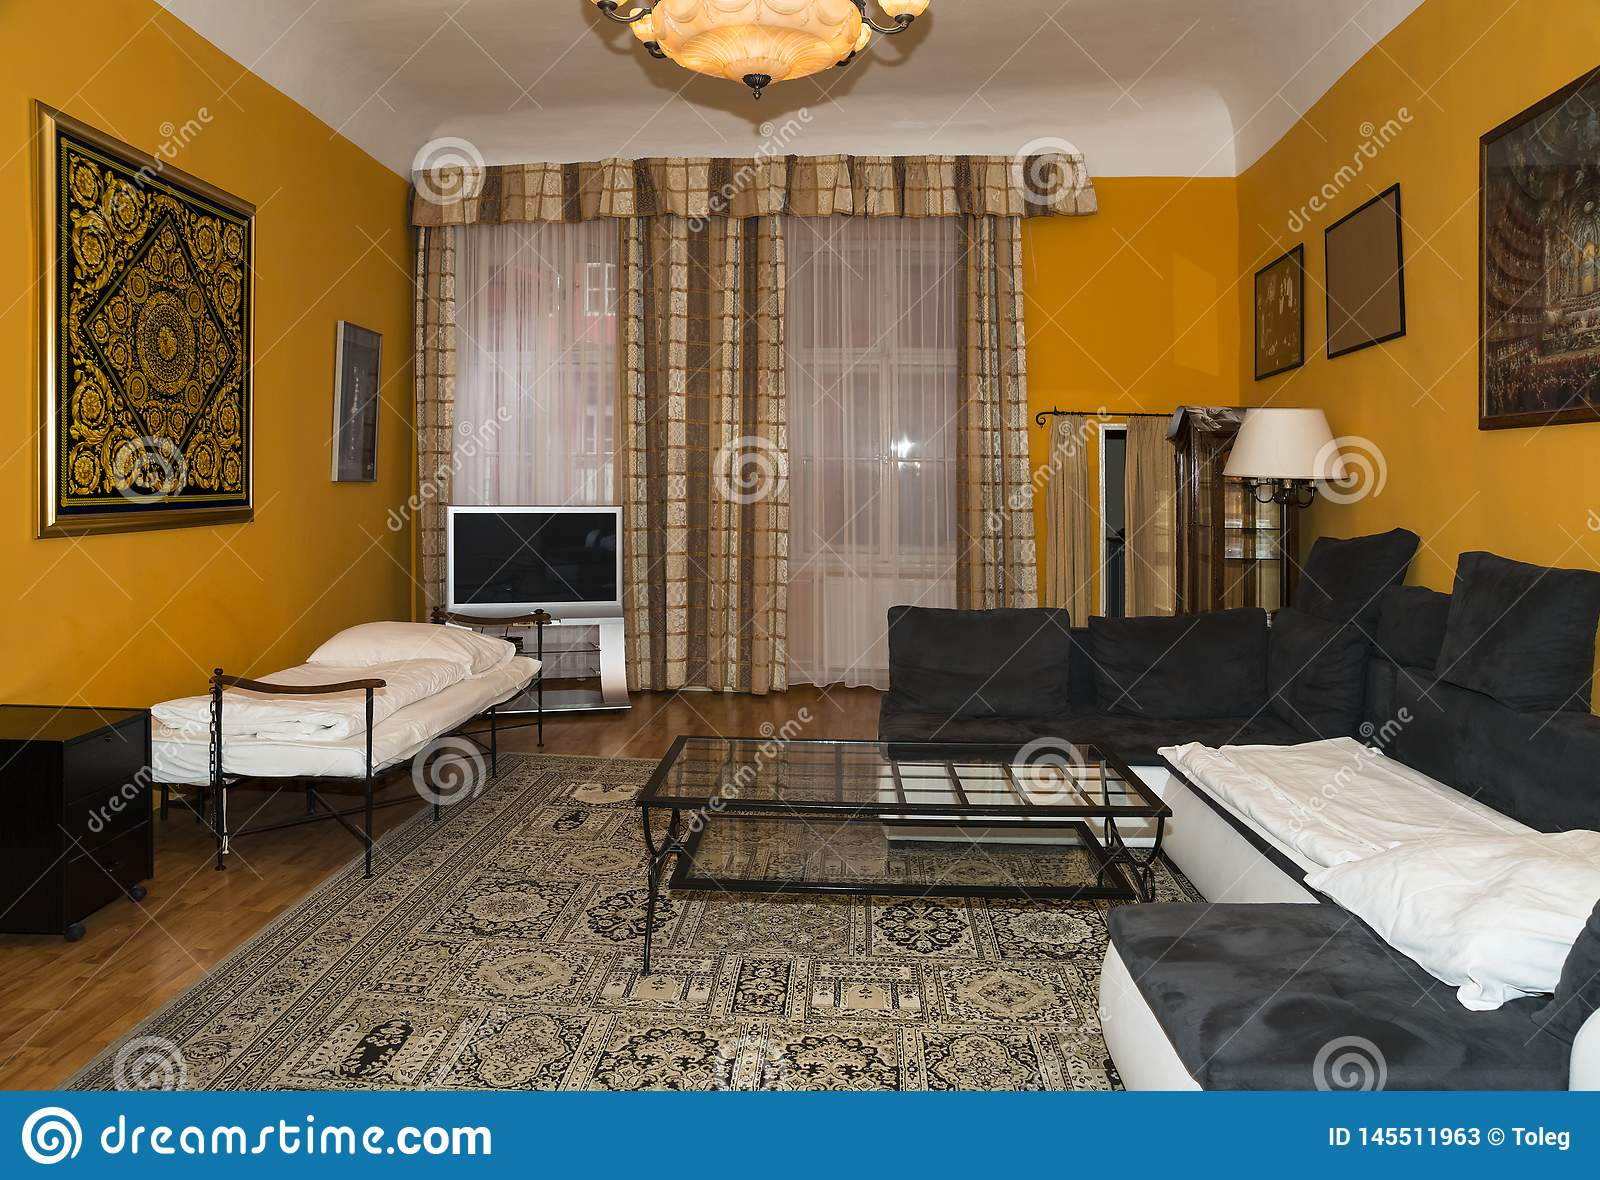 Picture of: Modern Living Room Design With Yellow Walls Carpet On The Floor And Curtains On The Windows Editorial Stock Photo Image Of Rest Soft 145511963